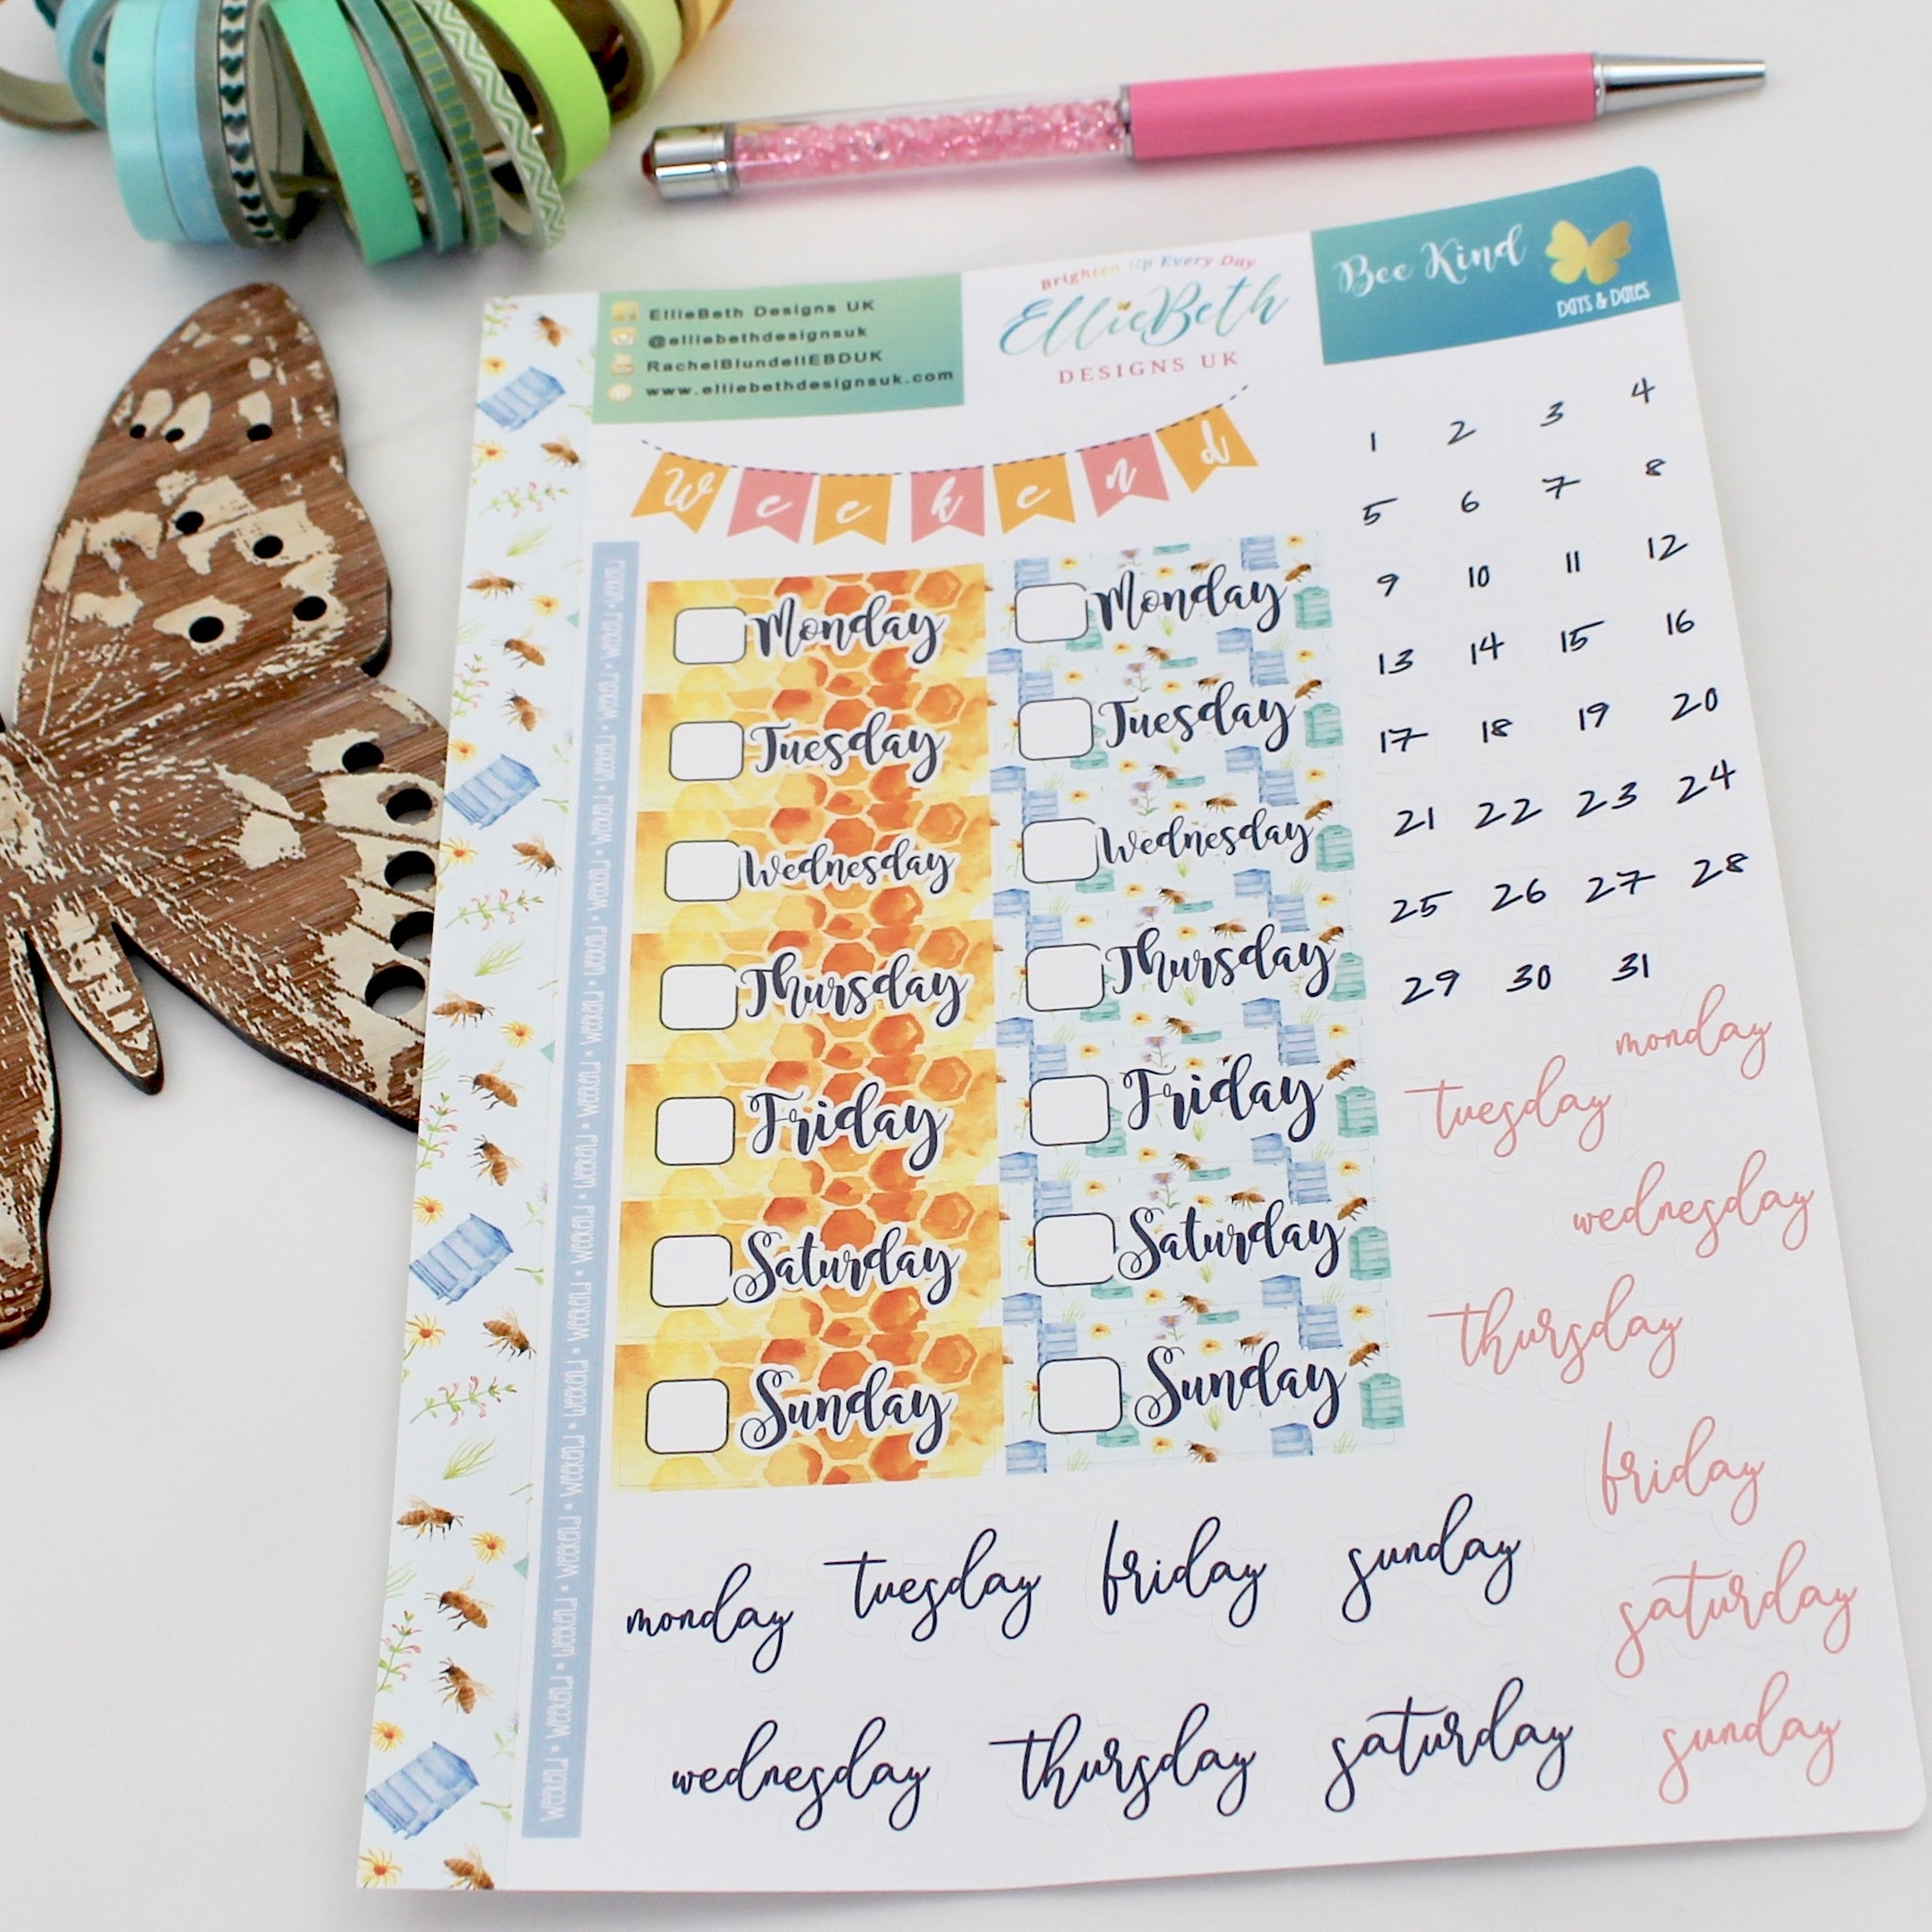 'Bee Kind' - Days and Dates - A5 binder ready planner stickers